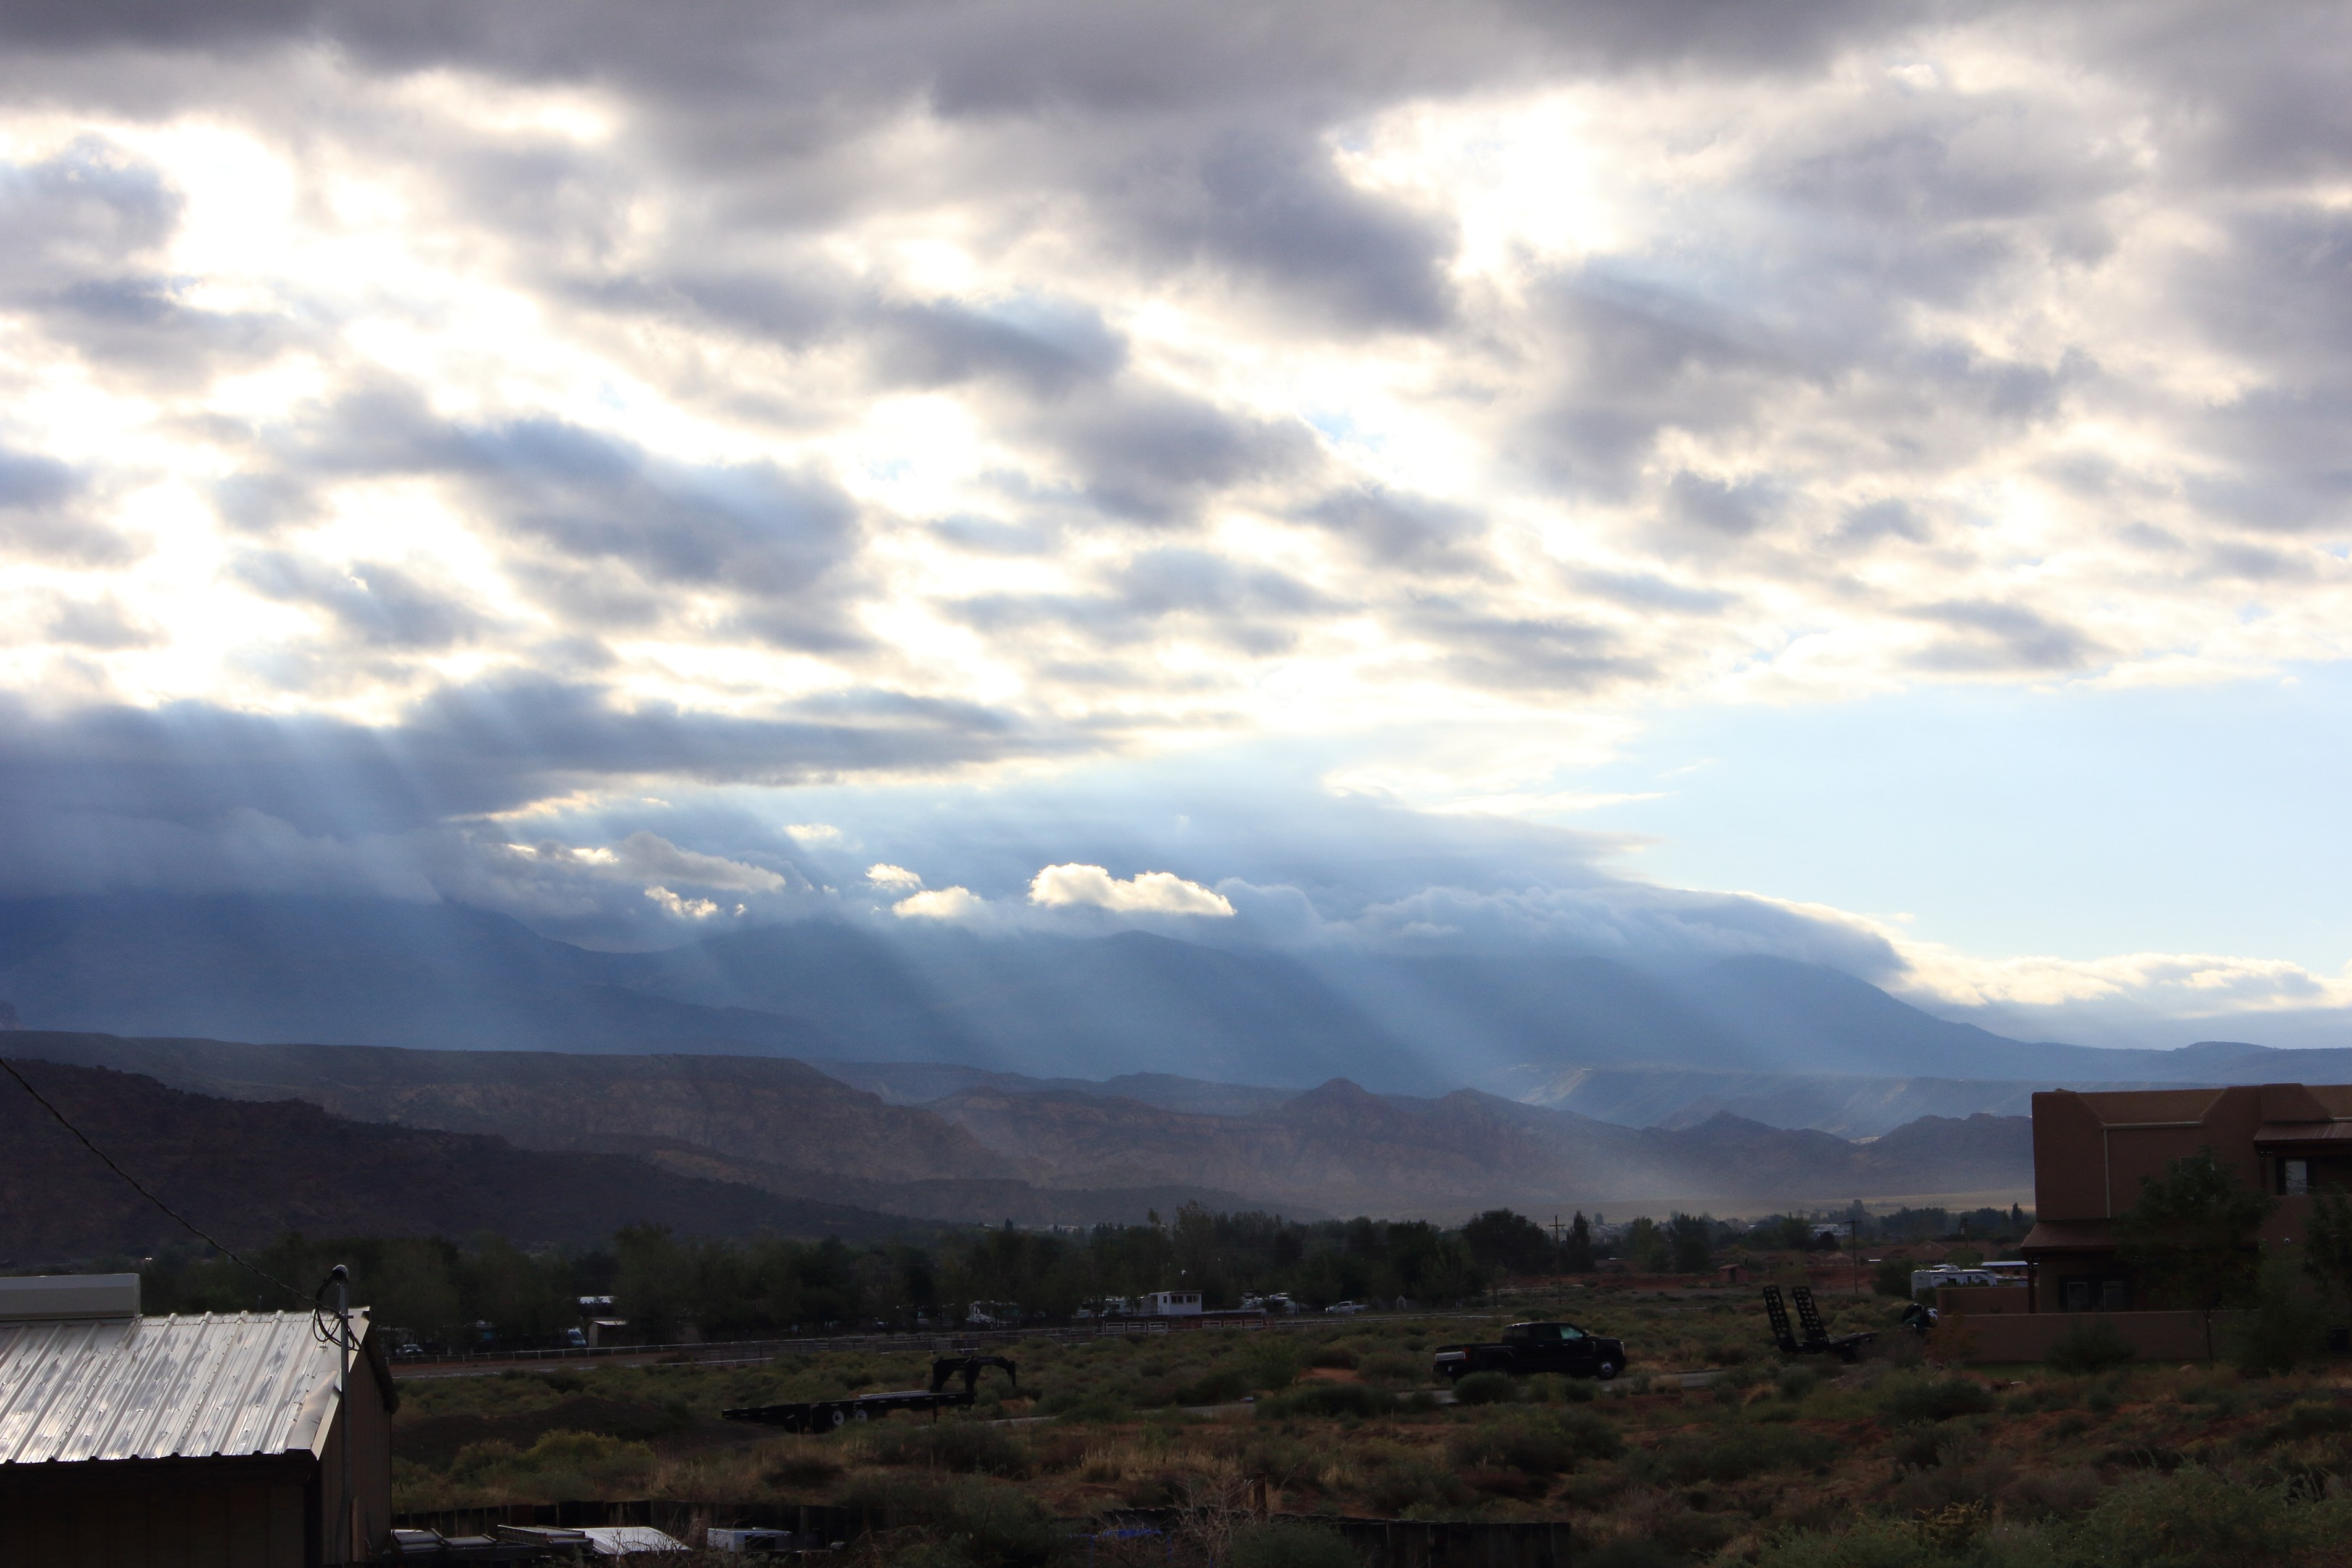 The La Sal Mountains. Taken from the KOA in Moab. As the clouds begin to clear, some God-Rays appear and I was fast enough with the camera to capture them.